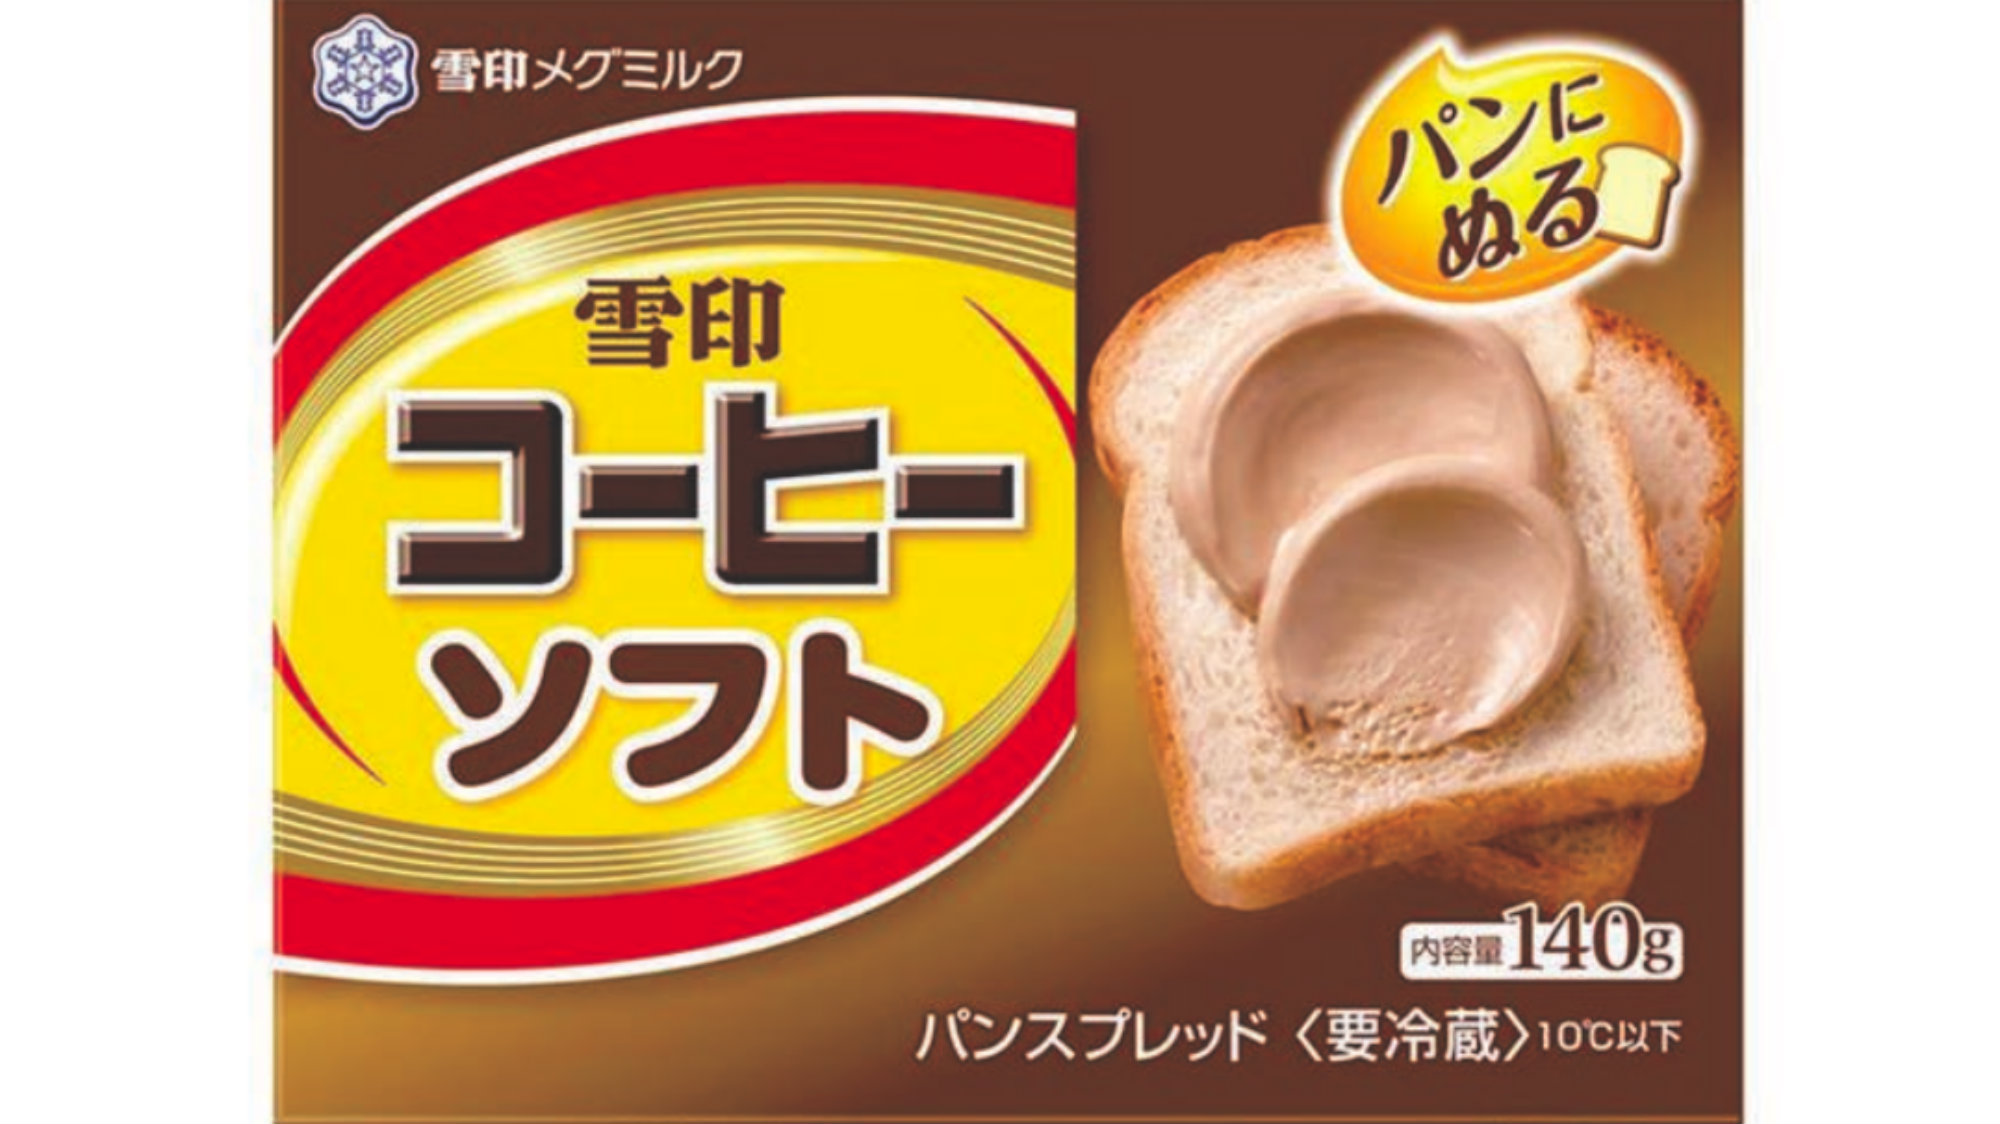 Snow Brand Milk's spreadable coffee